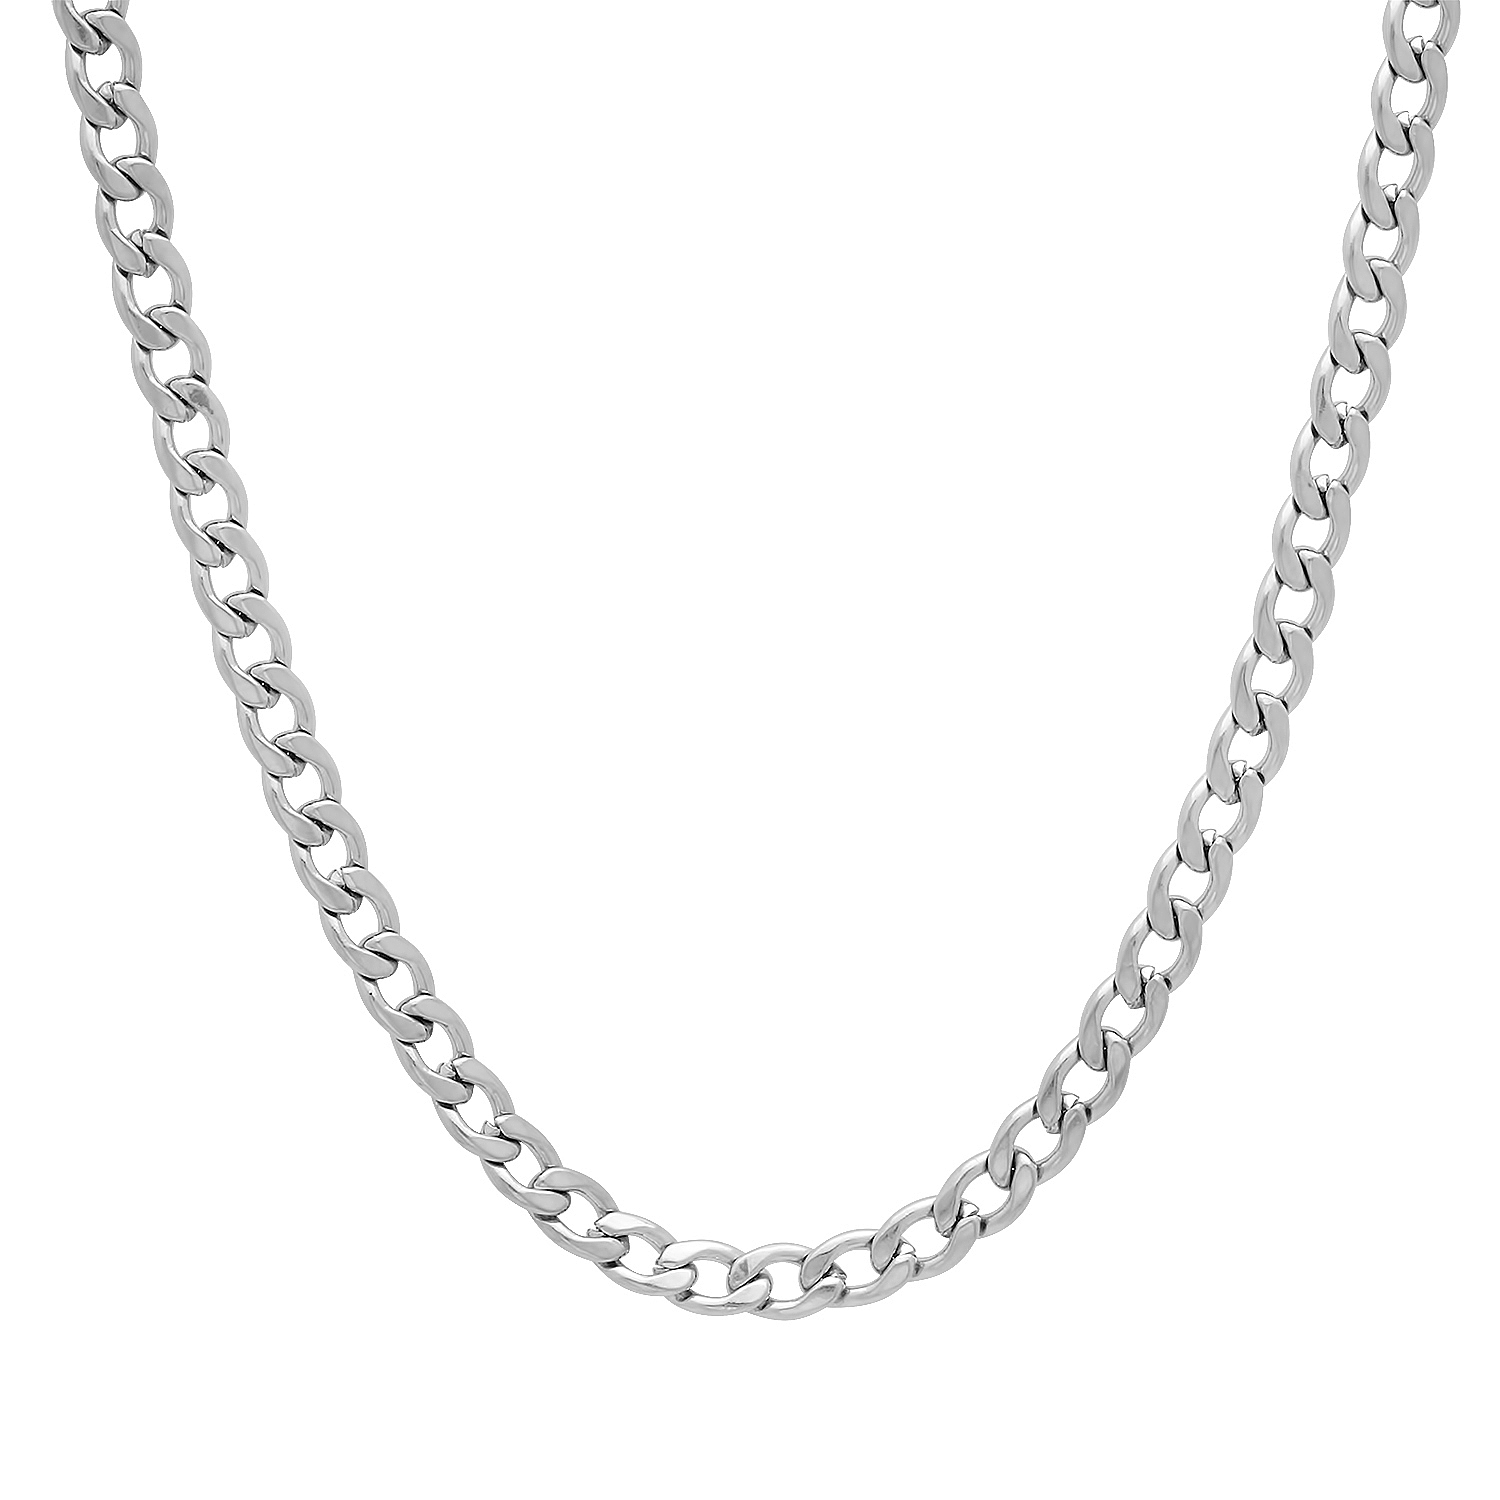 Thug Fashion Men's 4 mm Thin Solid 316L Surgical Stainless Steel Cuban Link Curb Neck Chain at Sears.com